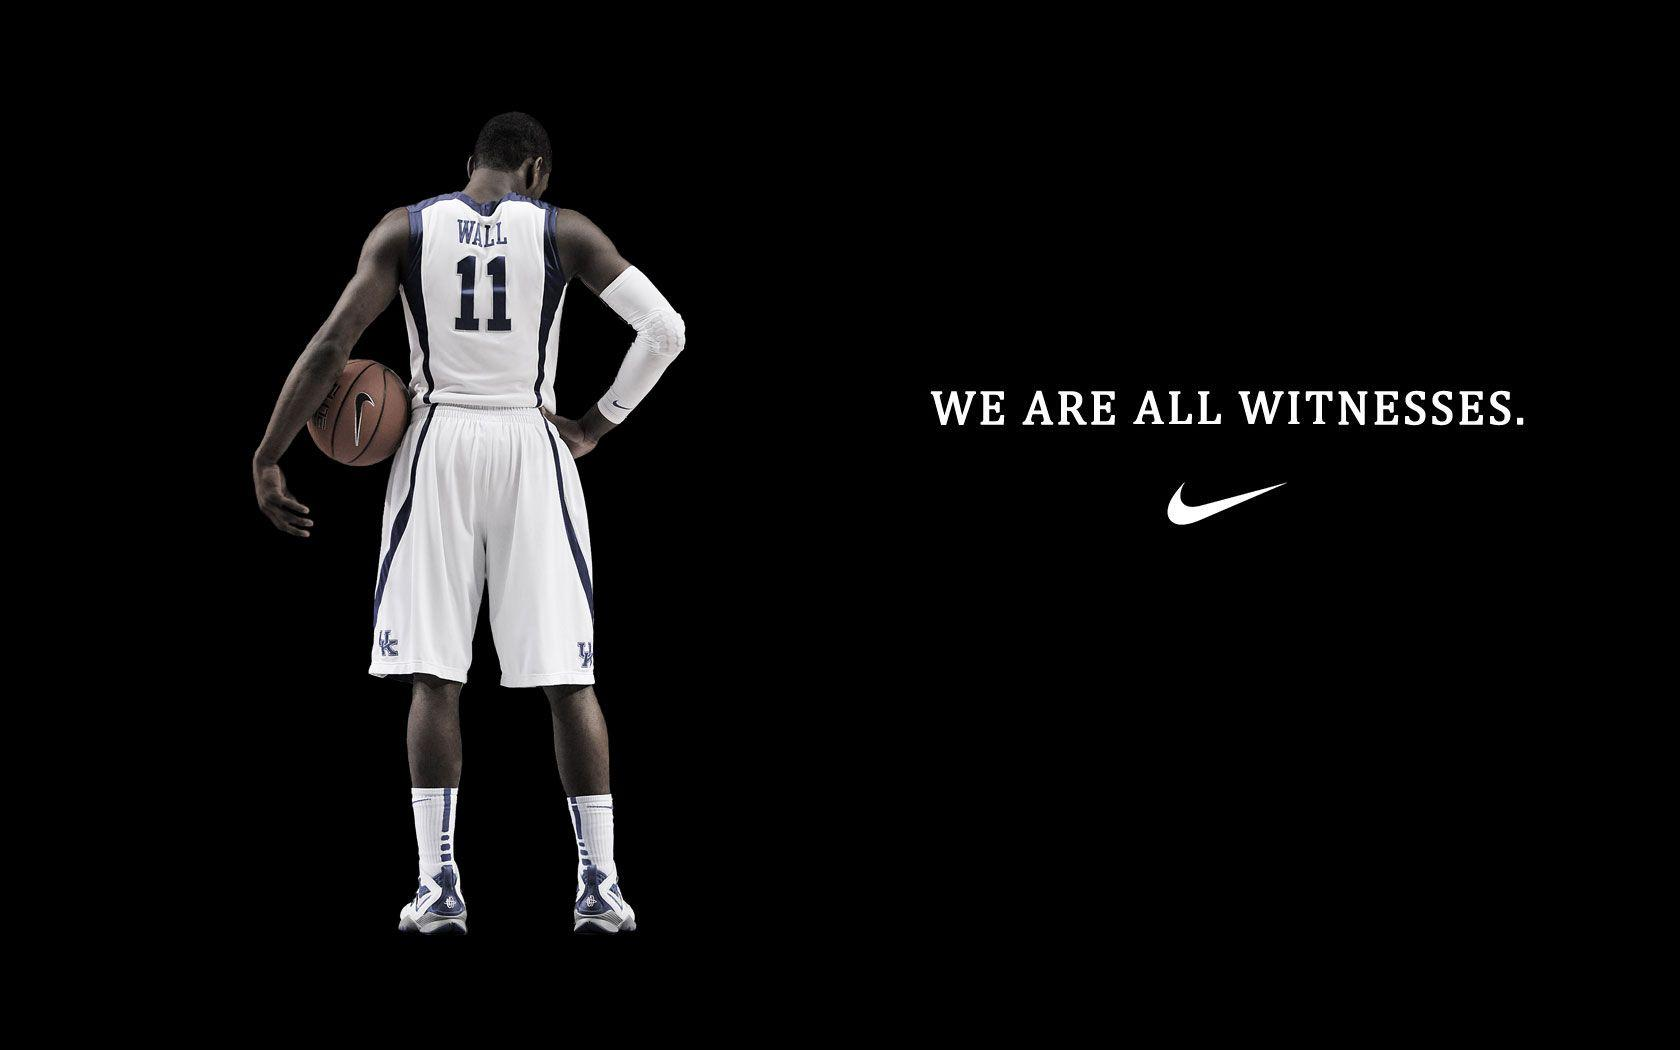 Nike Basketball Wallpapers 2017 - Wallpaper Cave